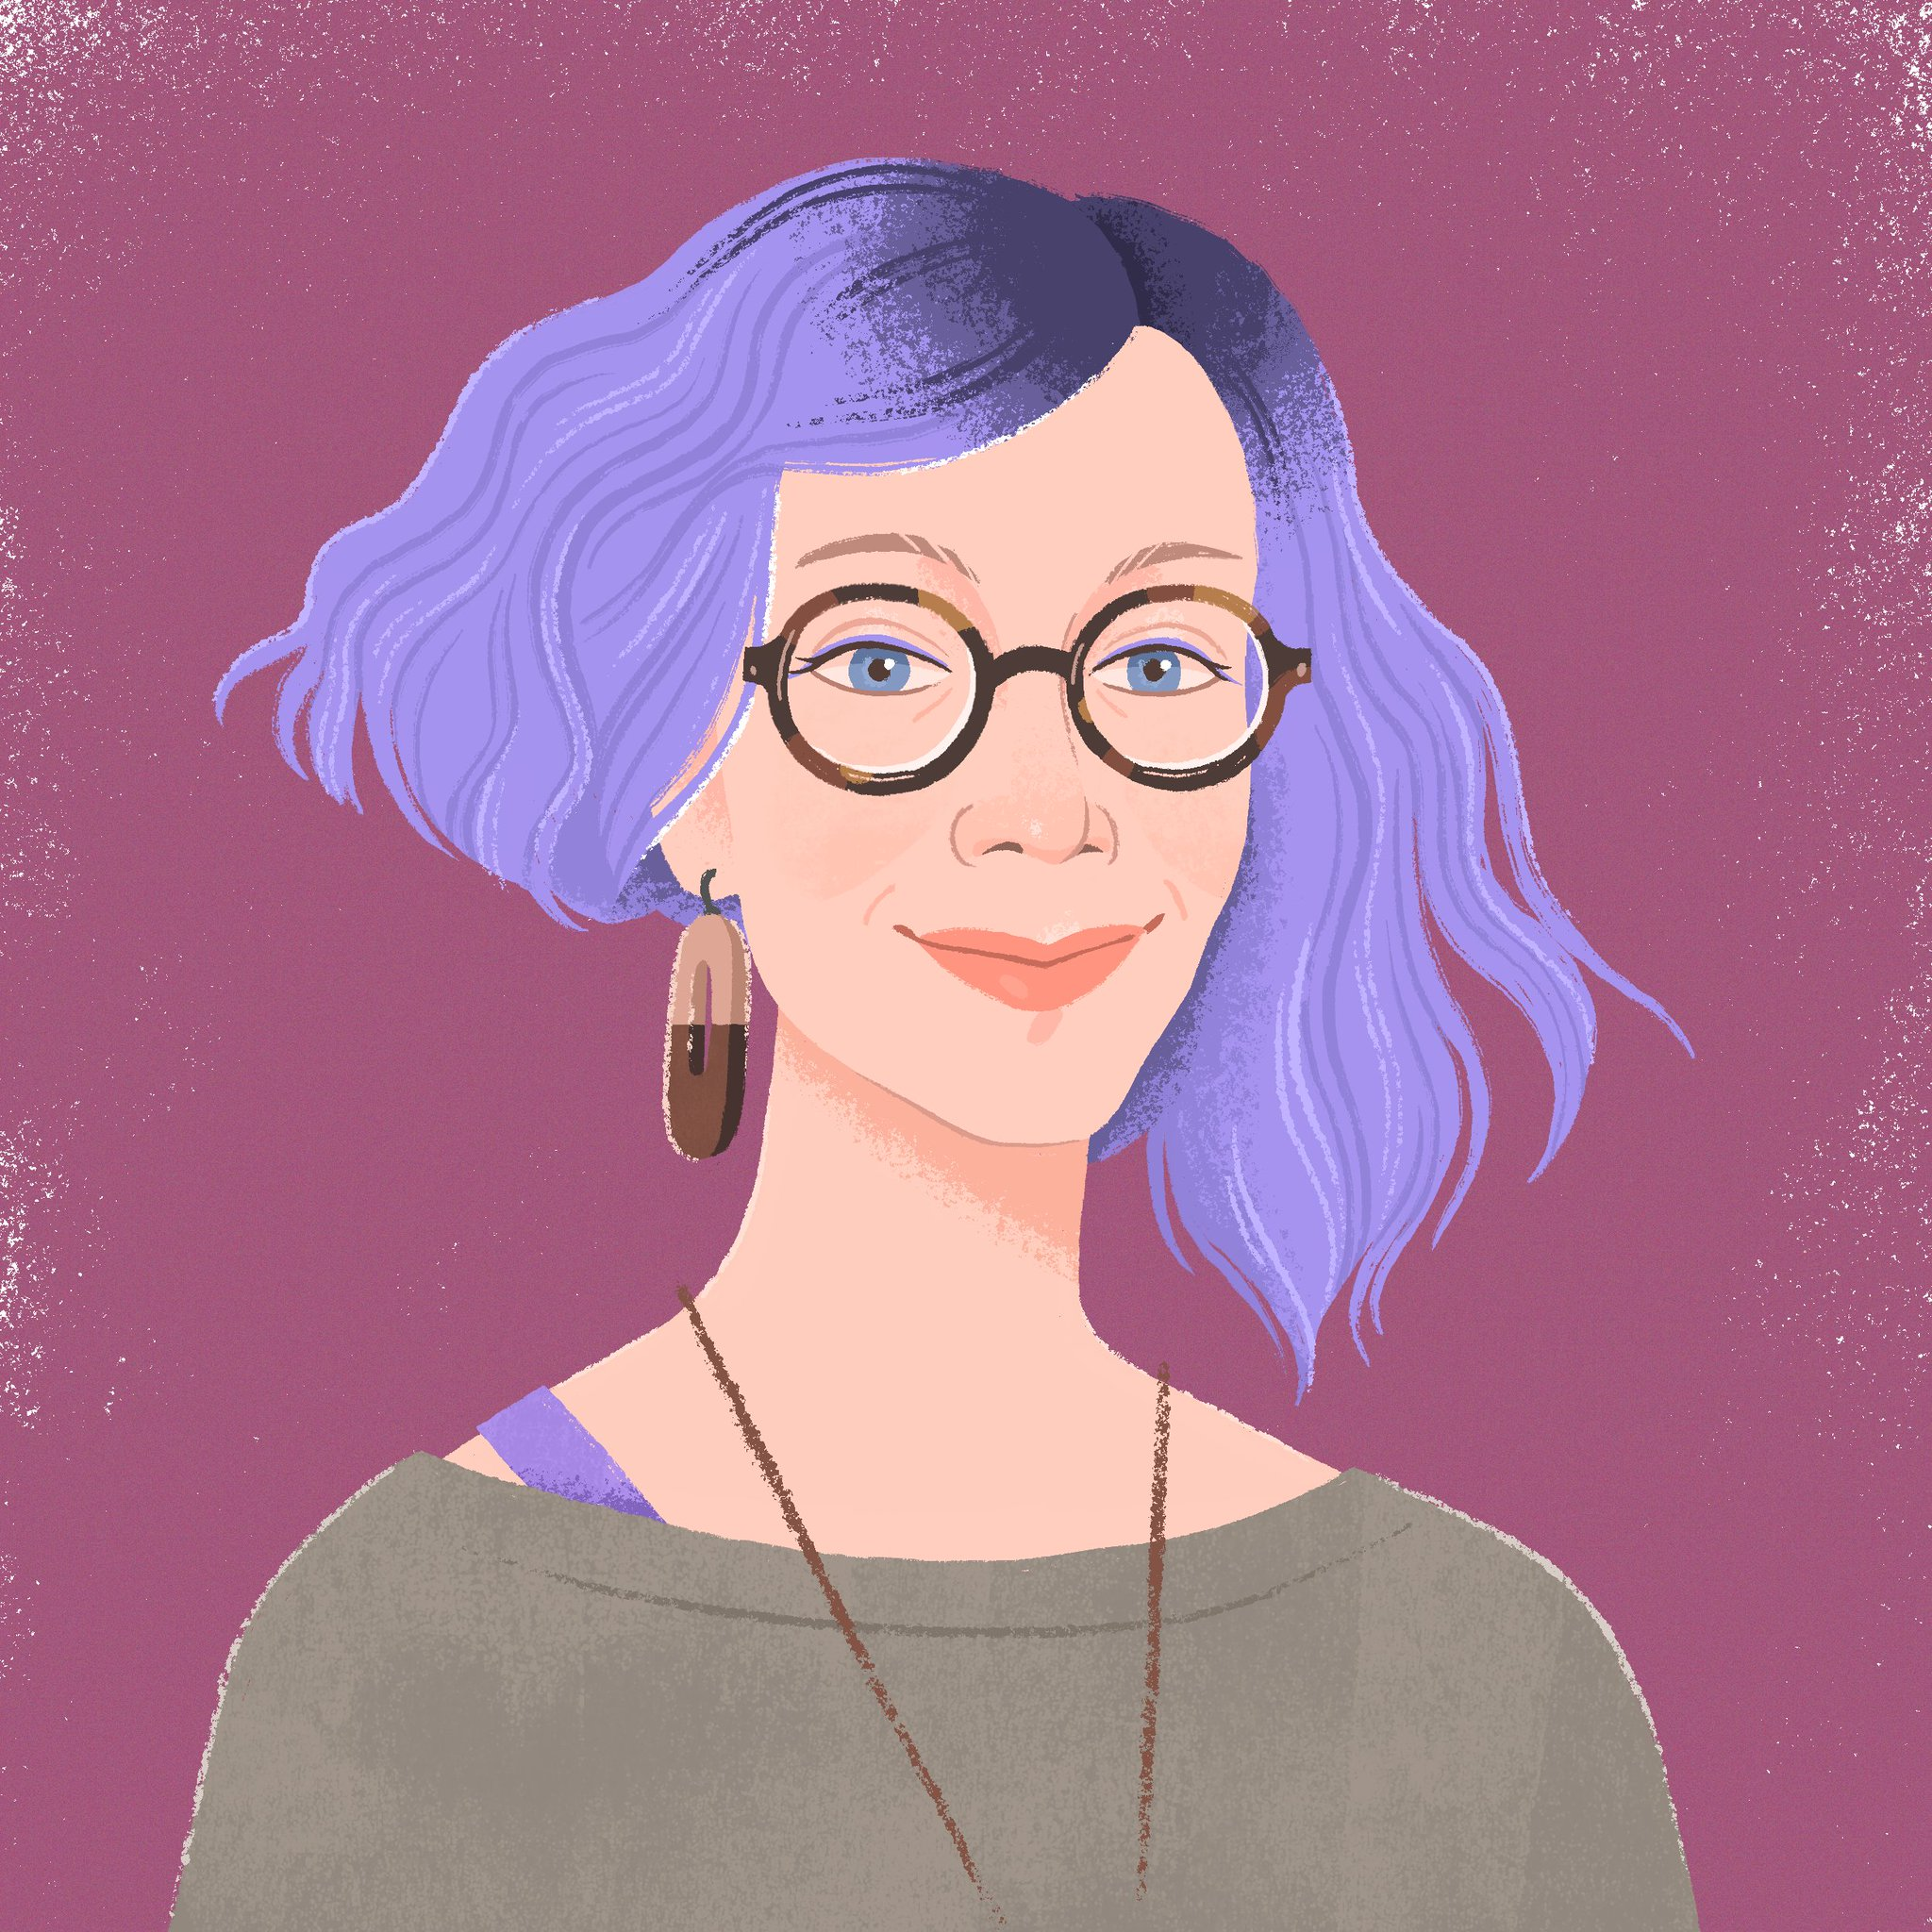 An illustration of Sasha by the Covatar team, with purple hair, a brown sweater, and round brown glasses.